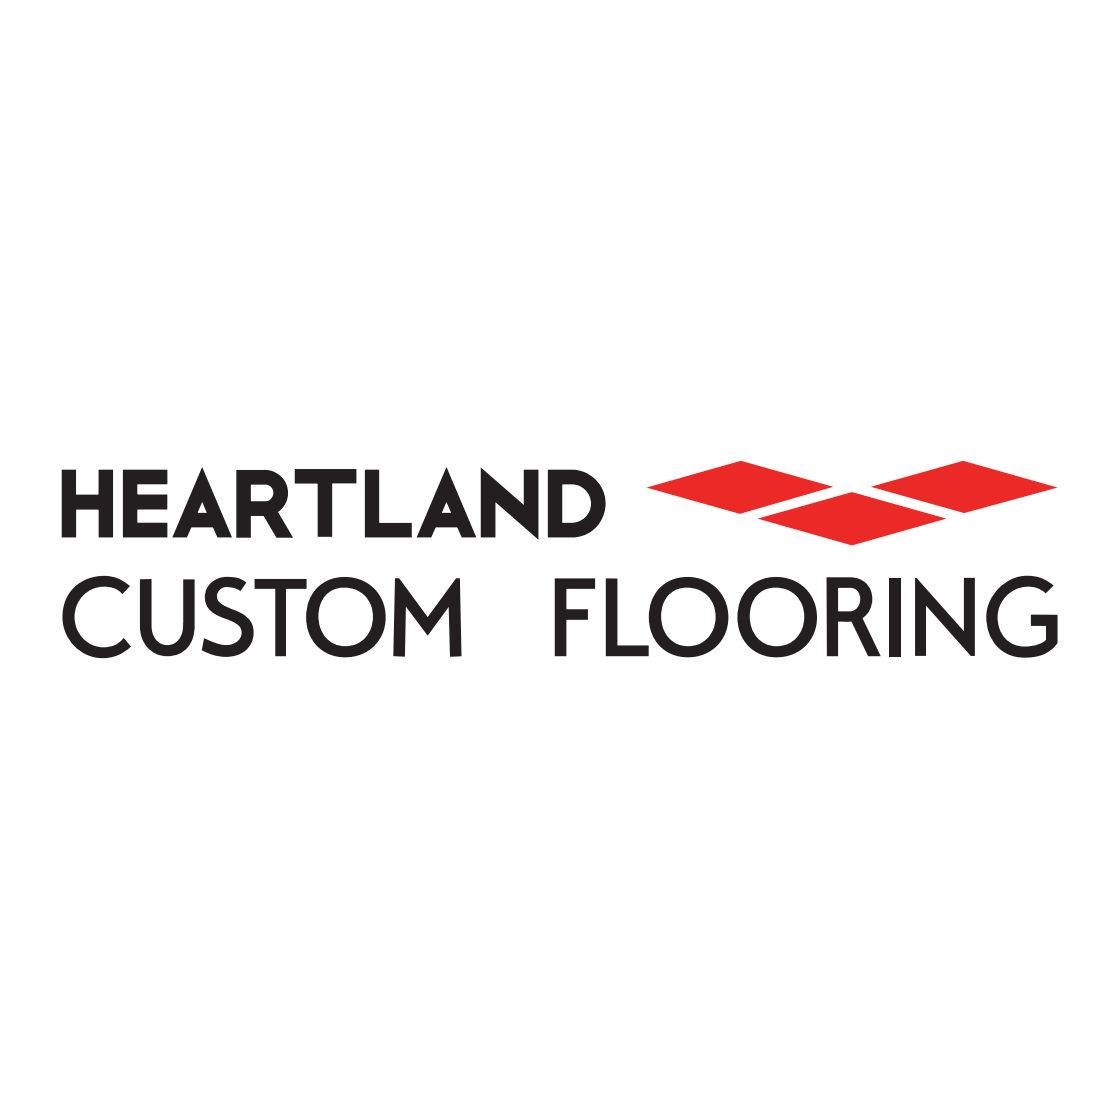 Heartland Custom Flooring